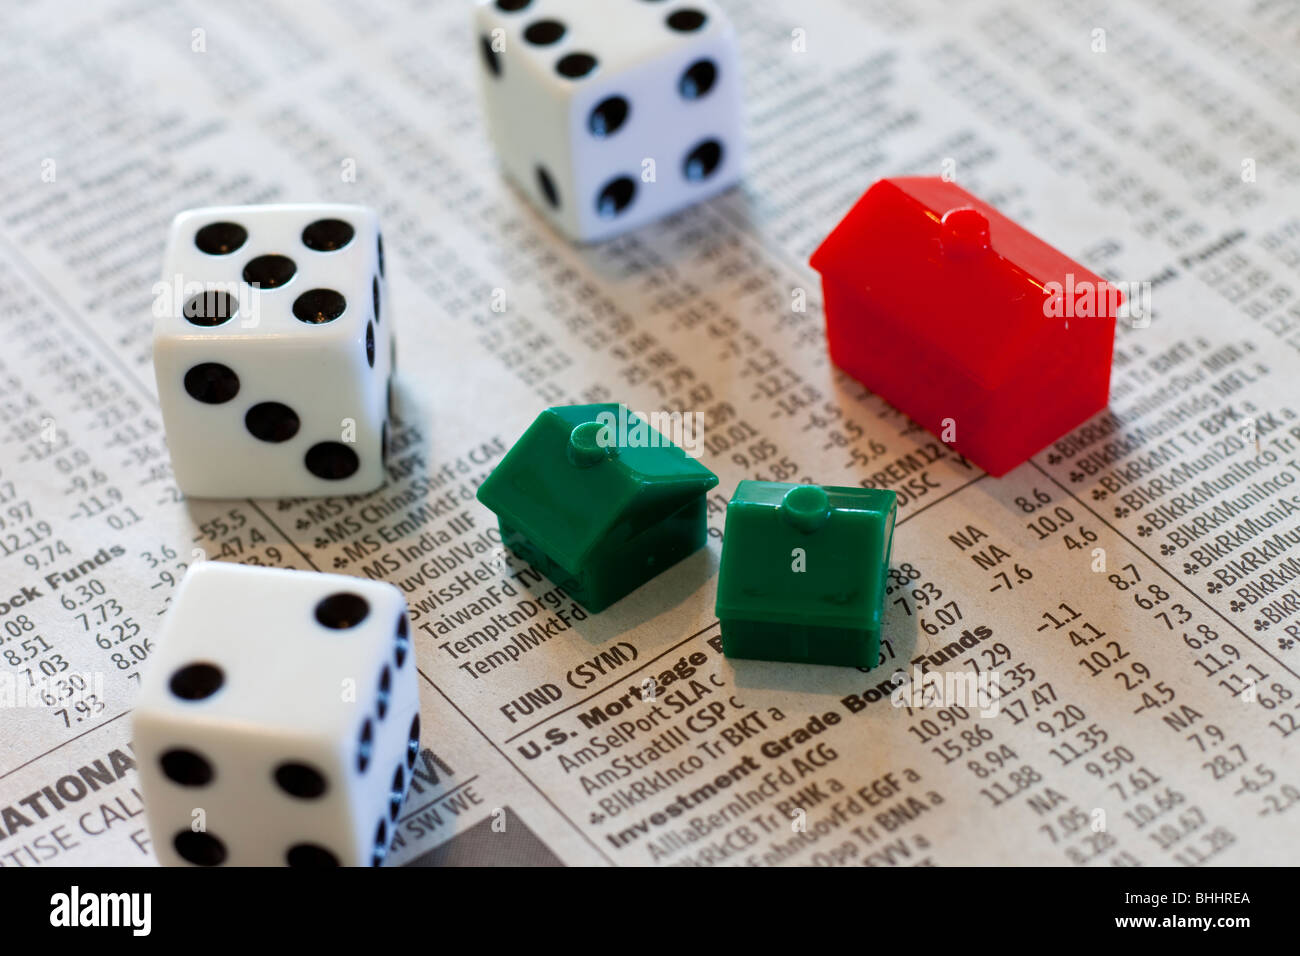 Dice, Monopoly houses and hotel on investment newspaper - Stock Image